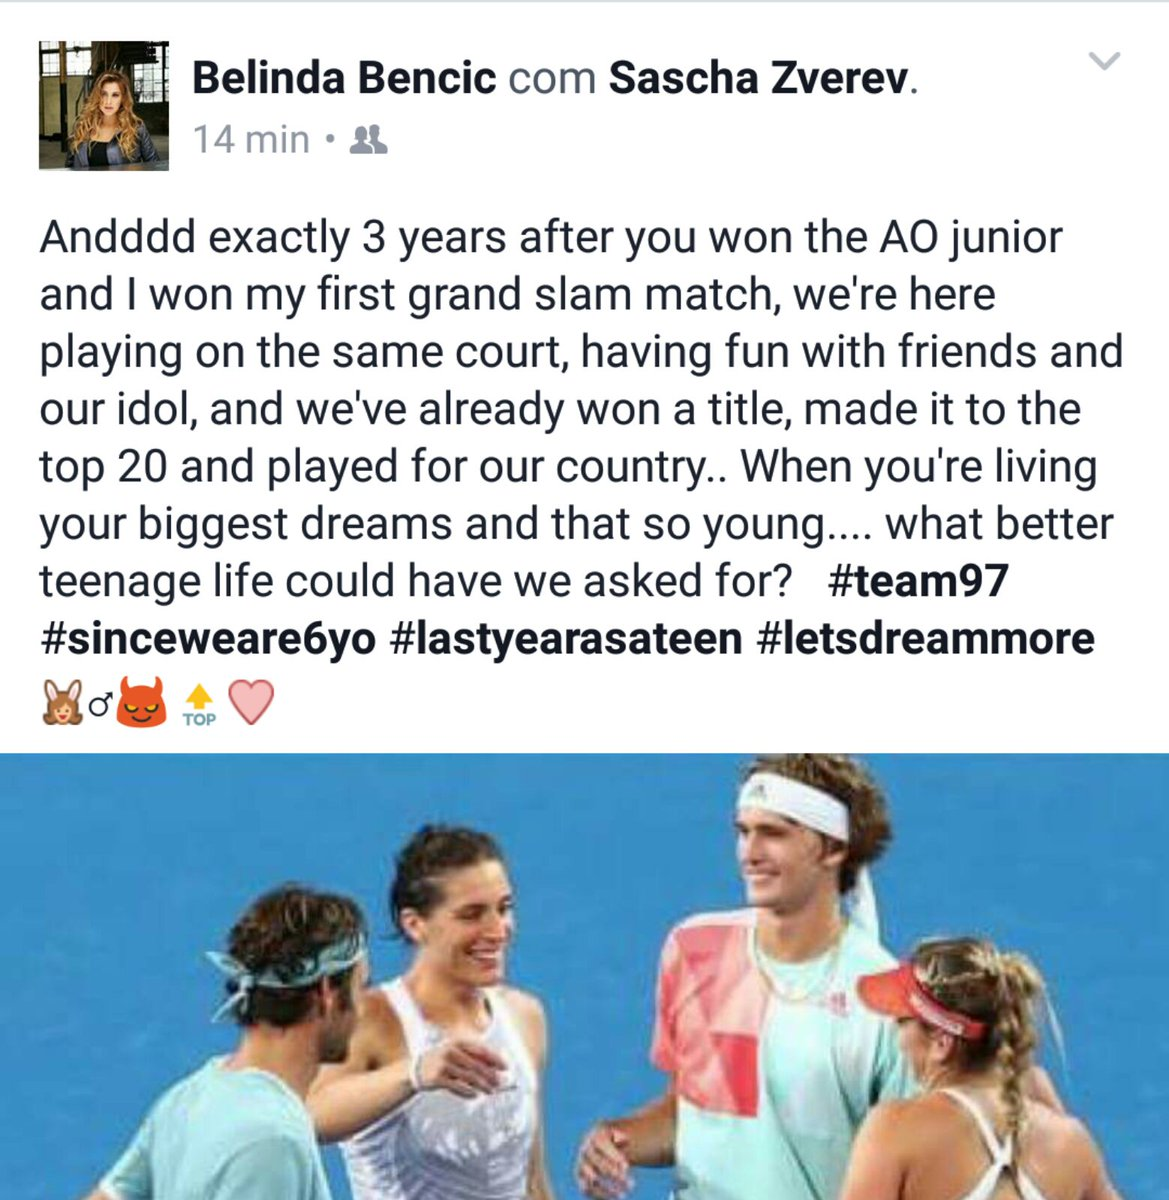 Very cute tribute from Bencic to Sascha on Facebook ❤️ https://t.co/5uO9viYZ8v